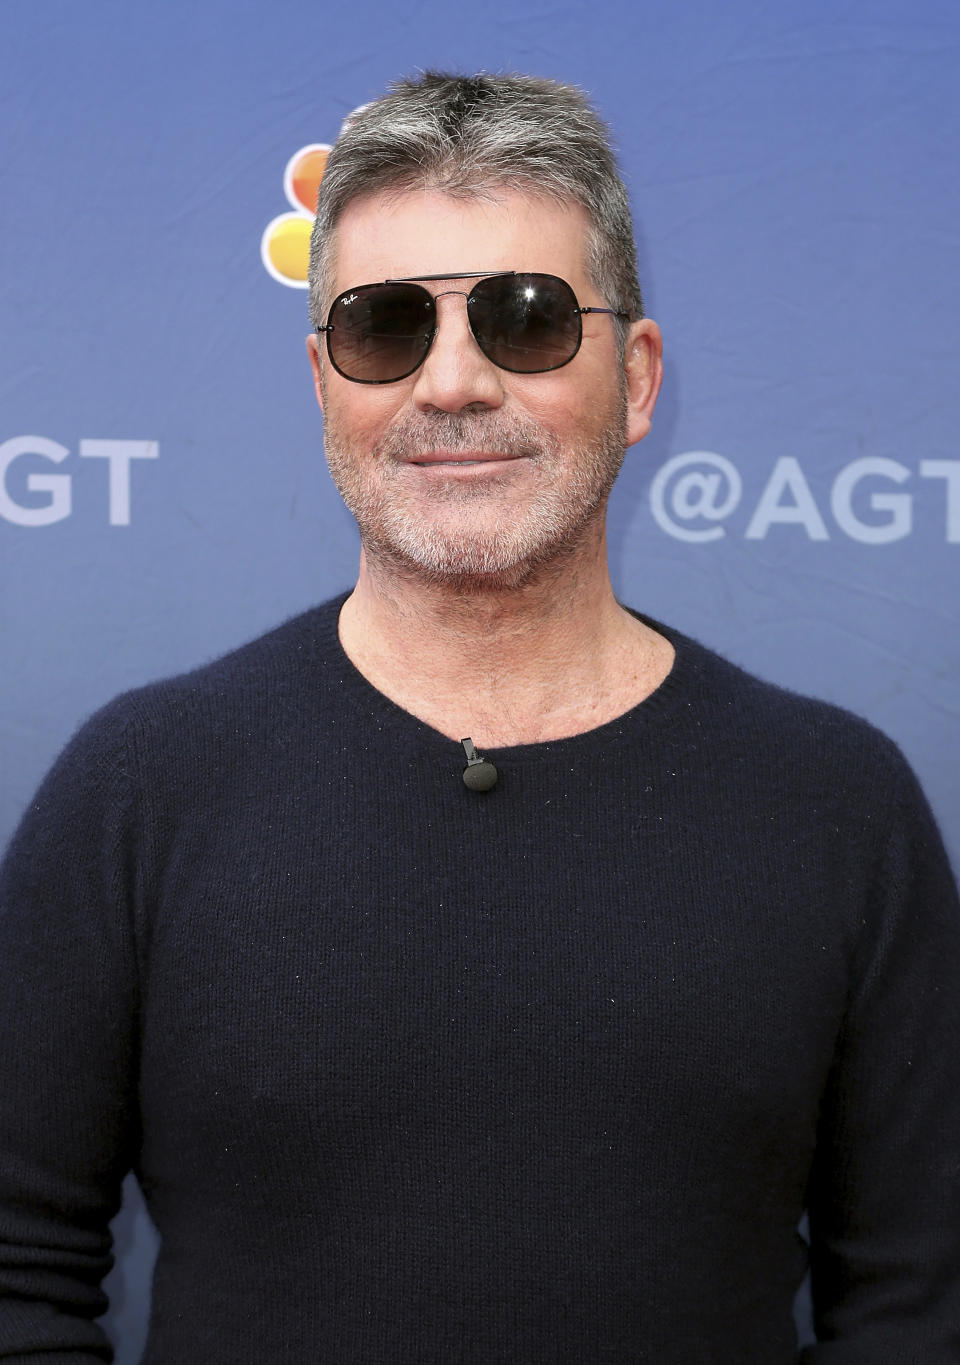 """Simon Cowell arrives at the """"America's Got Talent"""" Season 14 Kickoff at the Pasadena City Auditorium on Monday, March 11, 2019, in Pasadena, Calif. (Photo by Willy Sanjuan/Invision/AP)"""